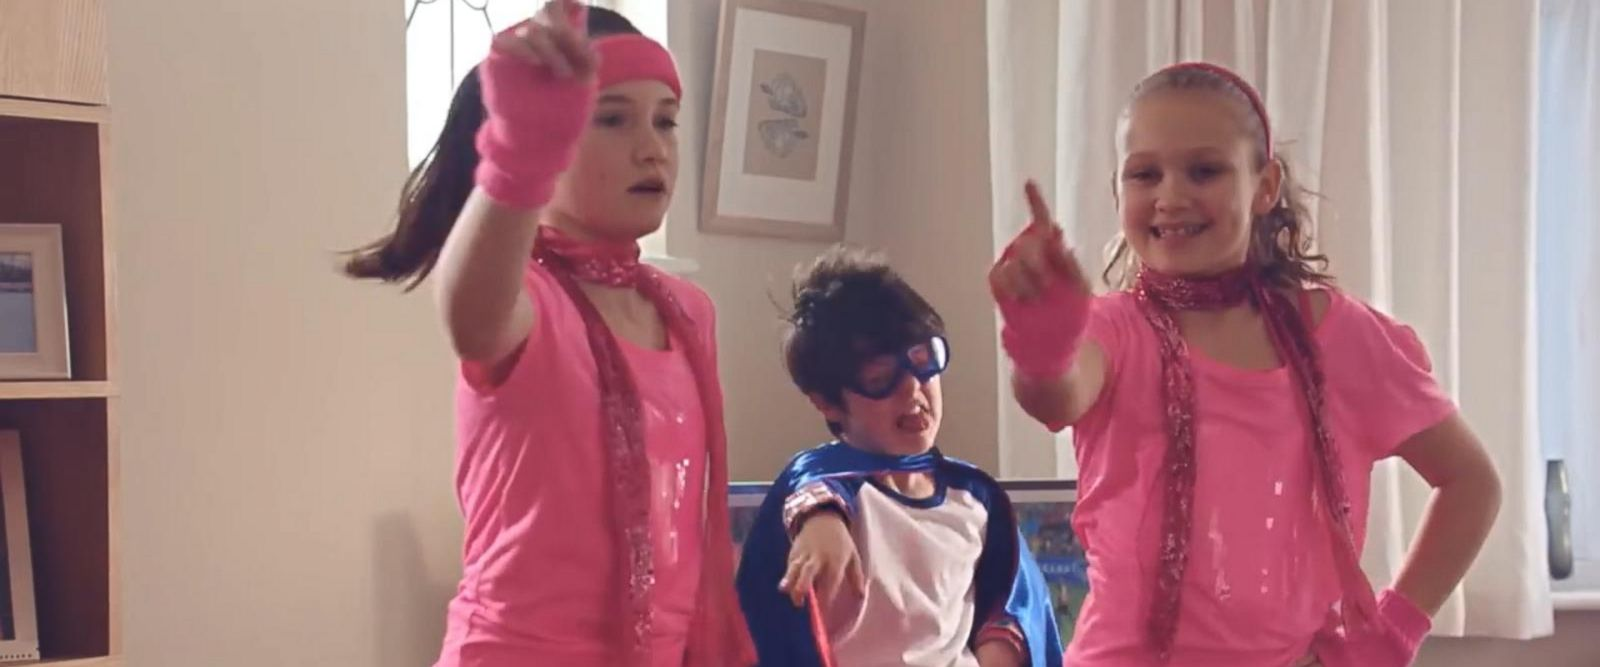 VIDEO: UK cracks down on ads featuring gender stereotypes